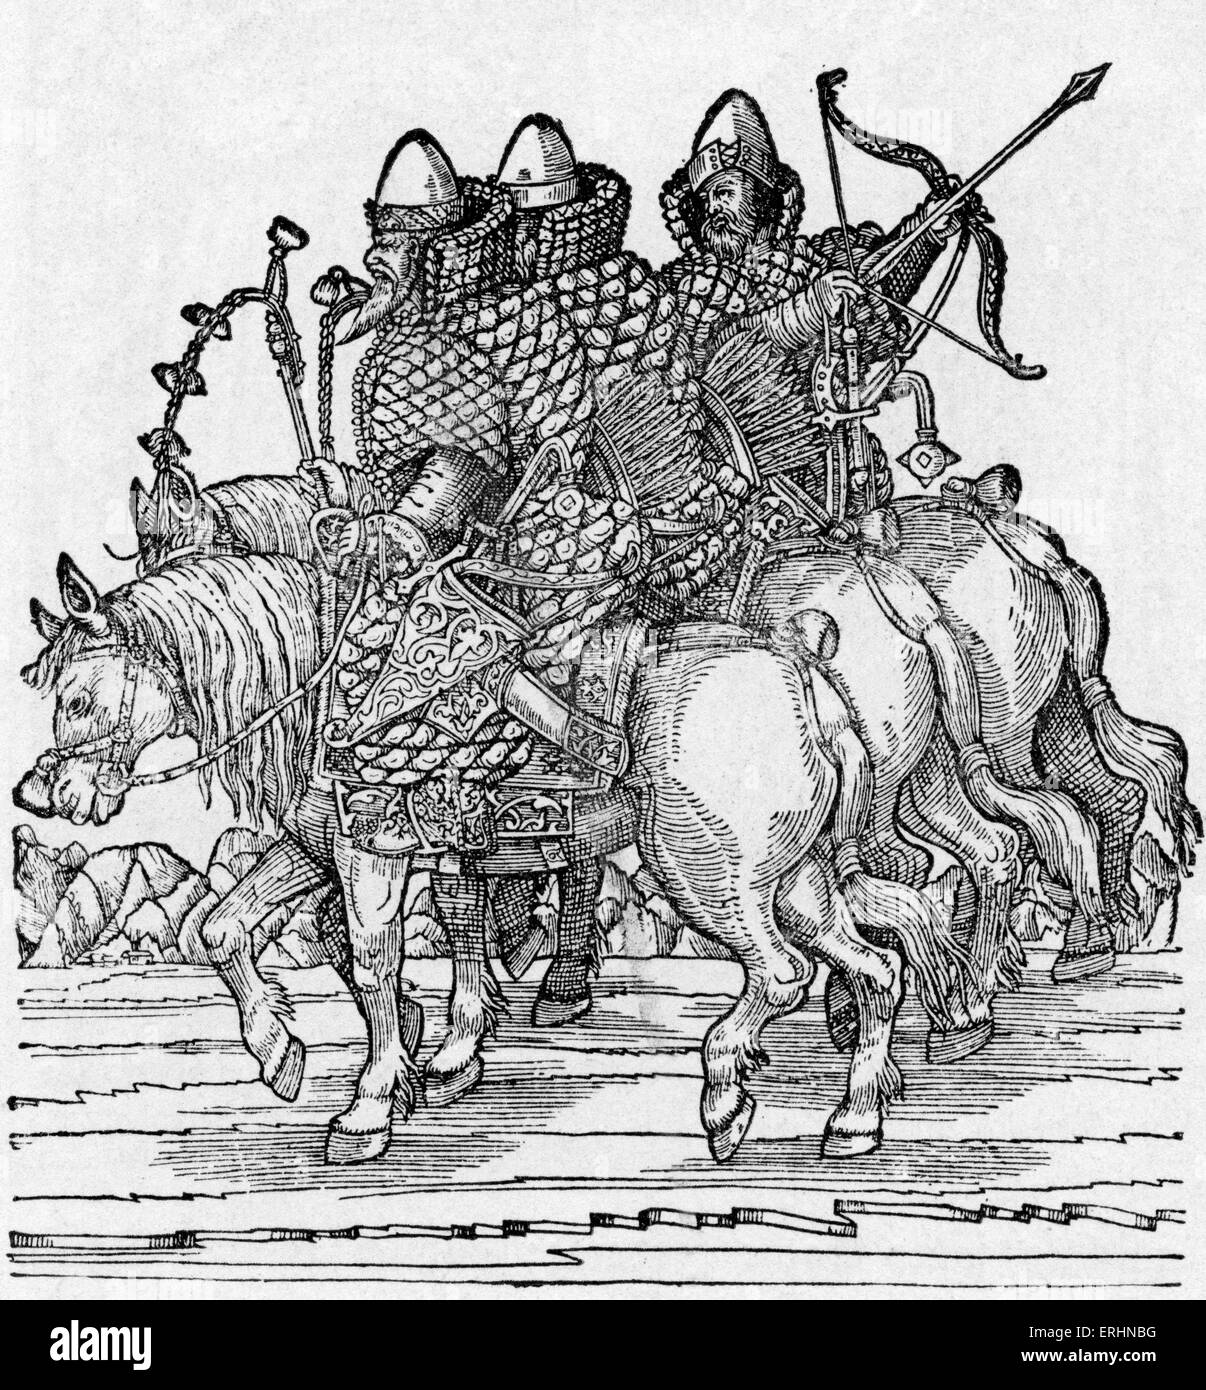 Russian Warriors mounted on horseback with crossbows and wearing chain mail armour, c. 1557. Woodcut from Baron - Stock Image